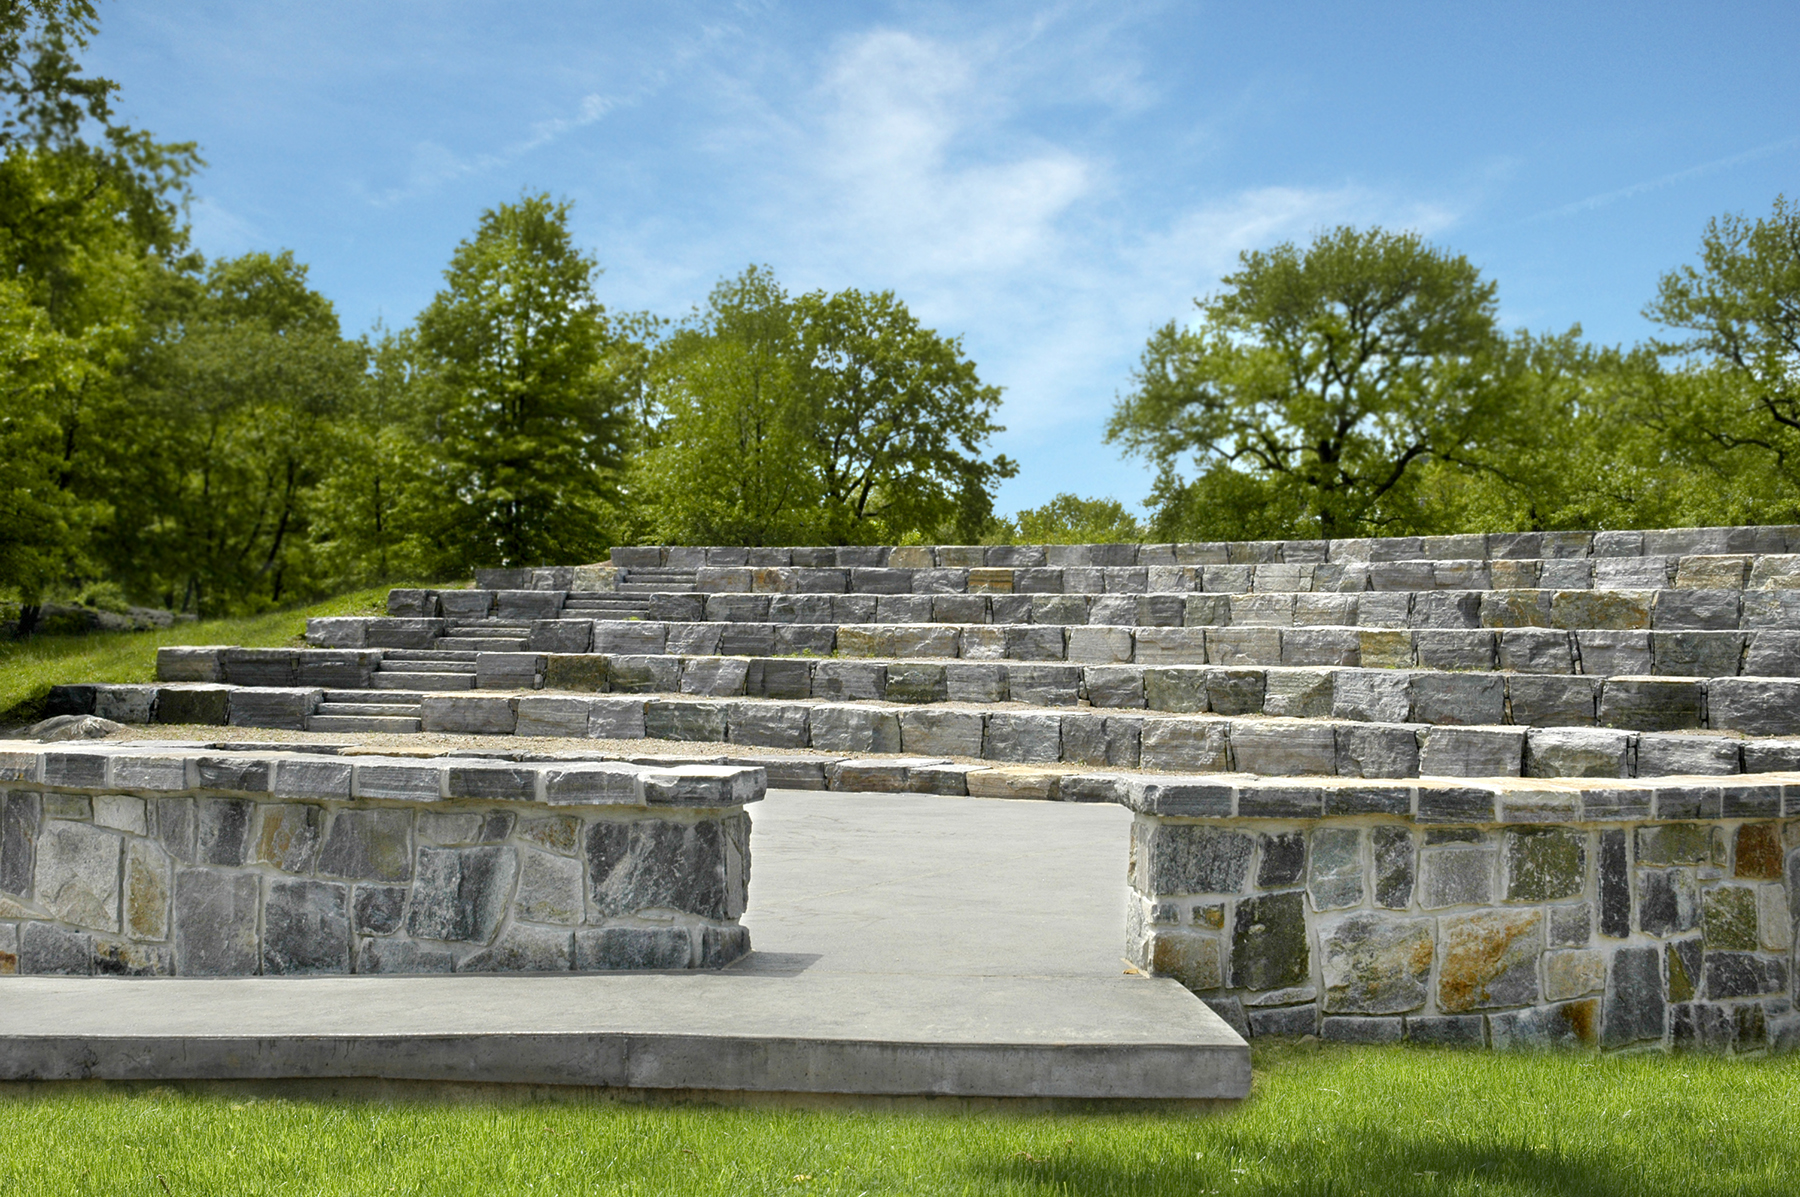 Stone amphitheater seating